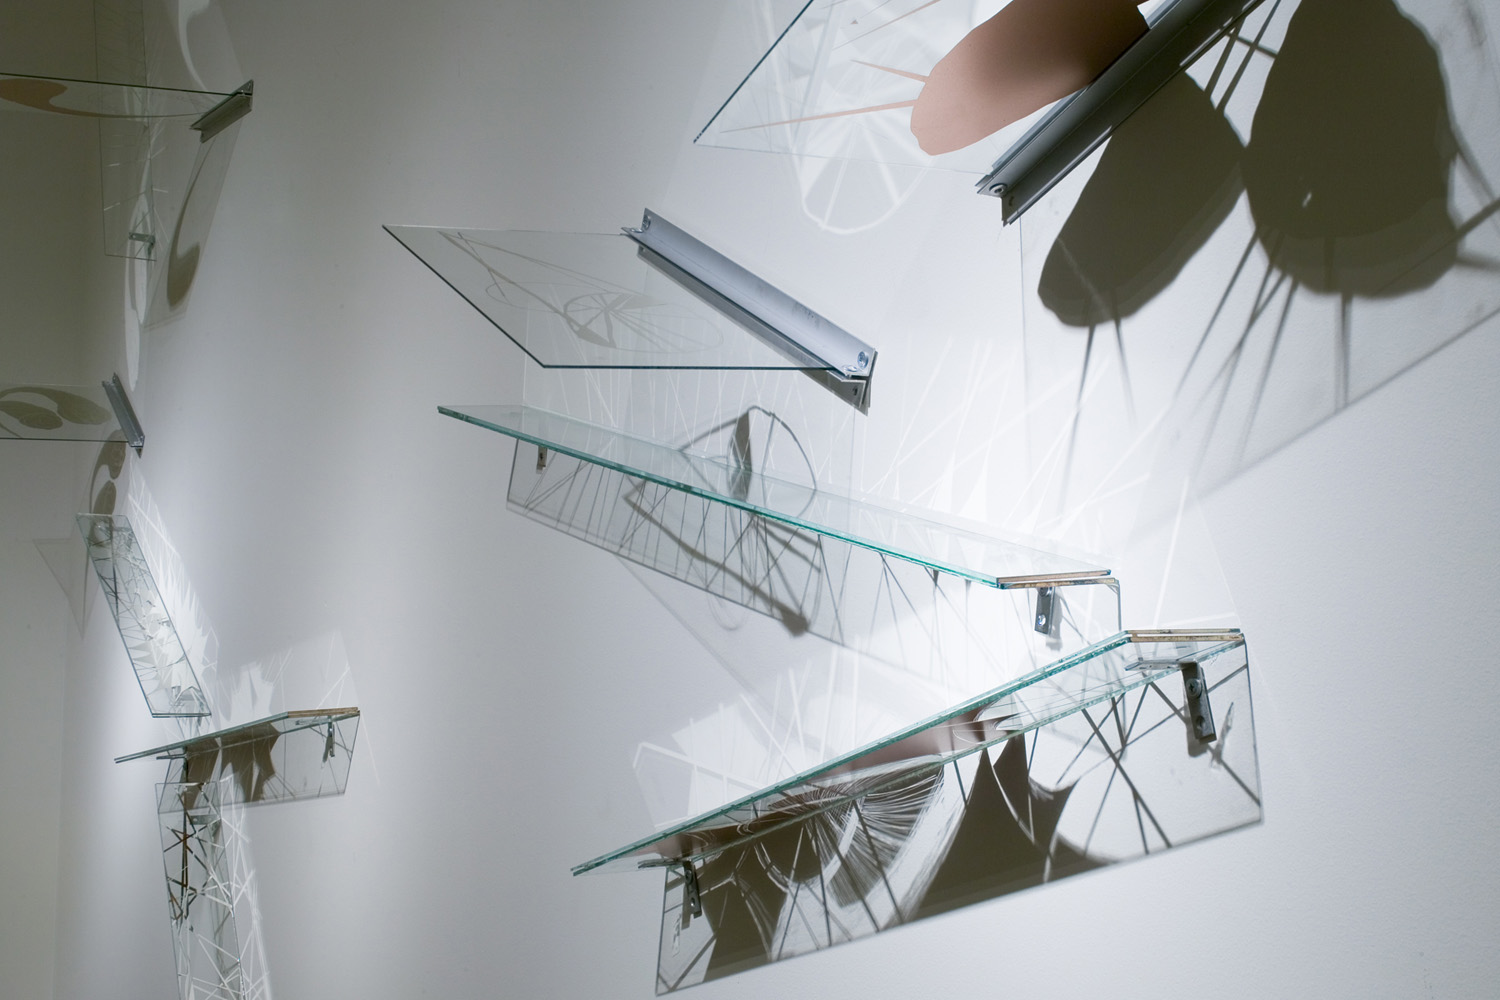 Hypnagogue, installation view detail, 2010 – SOIL at Seattle Design Center